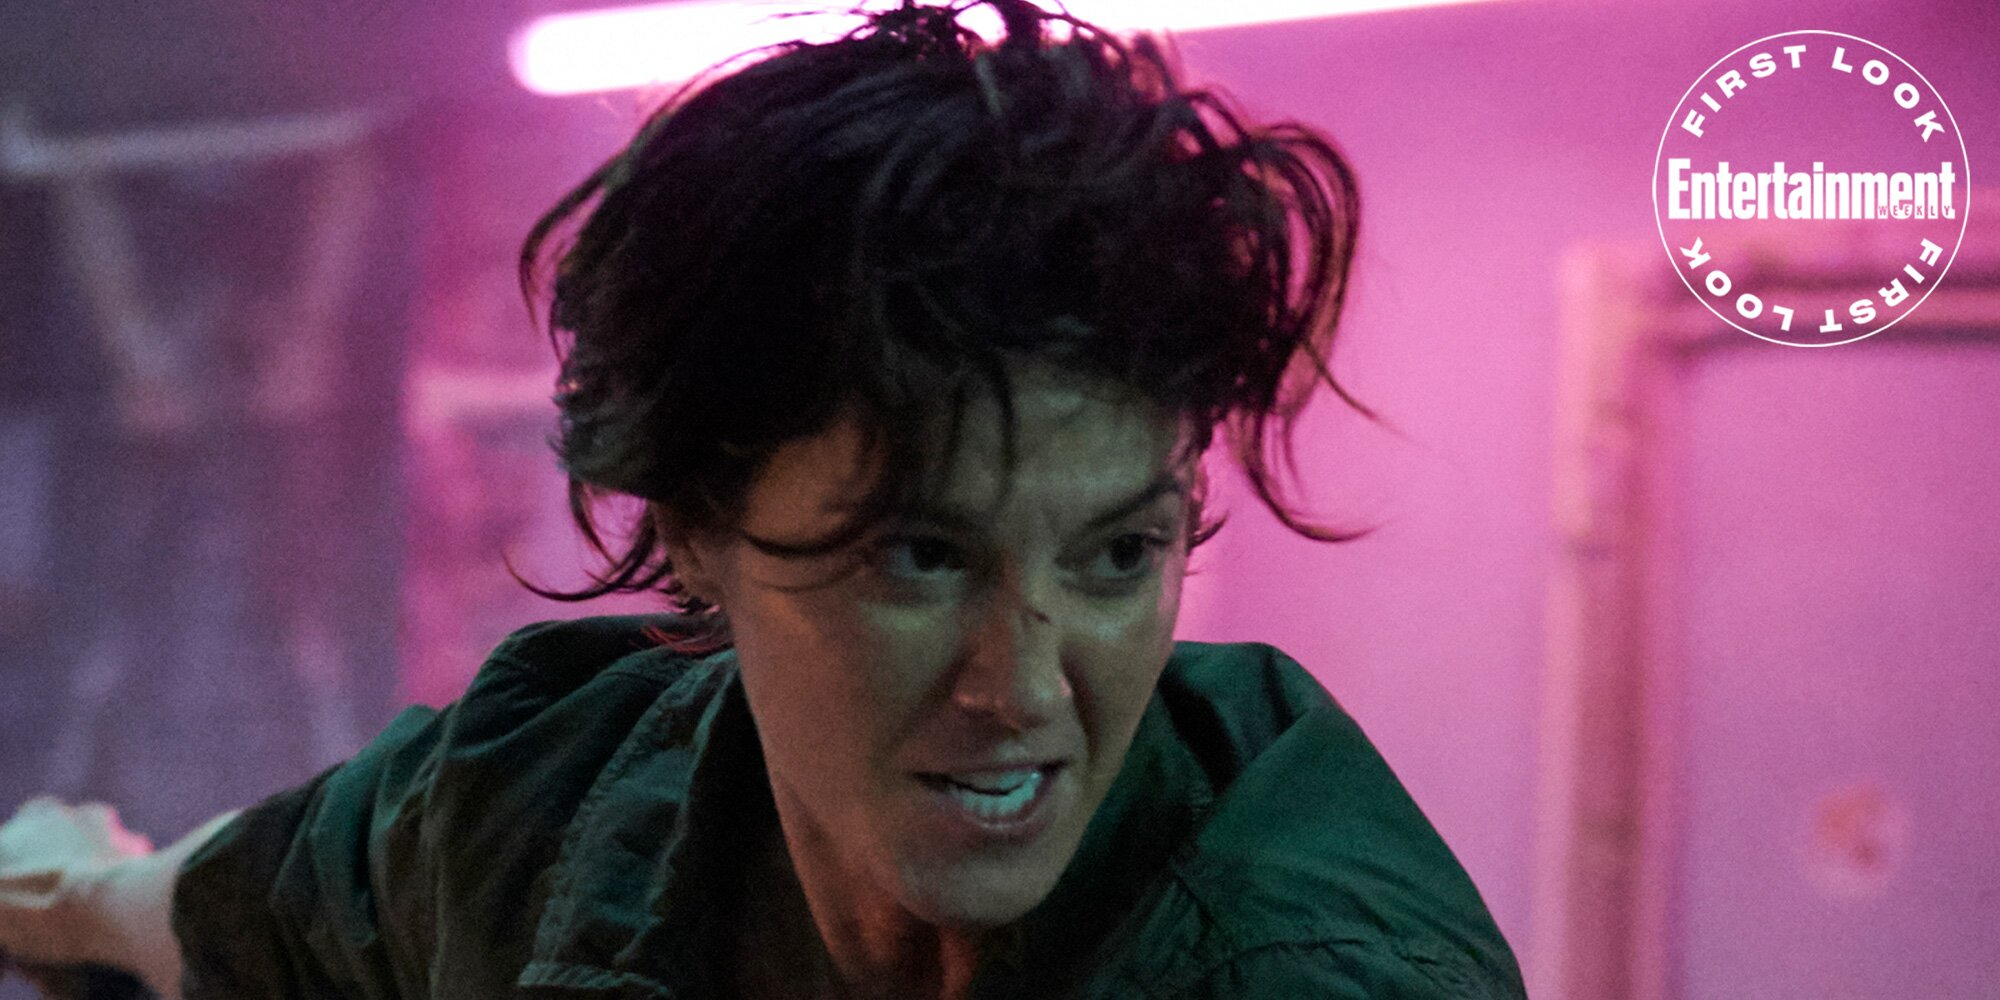 First look at Mary Elizabeth Winstead as an assassin in Netflix action-thriller 'Kate'